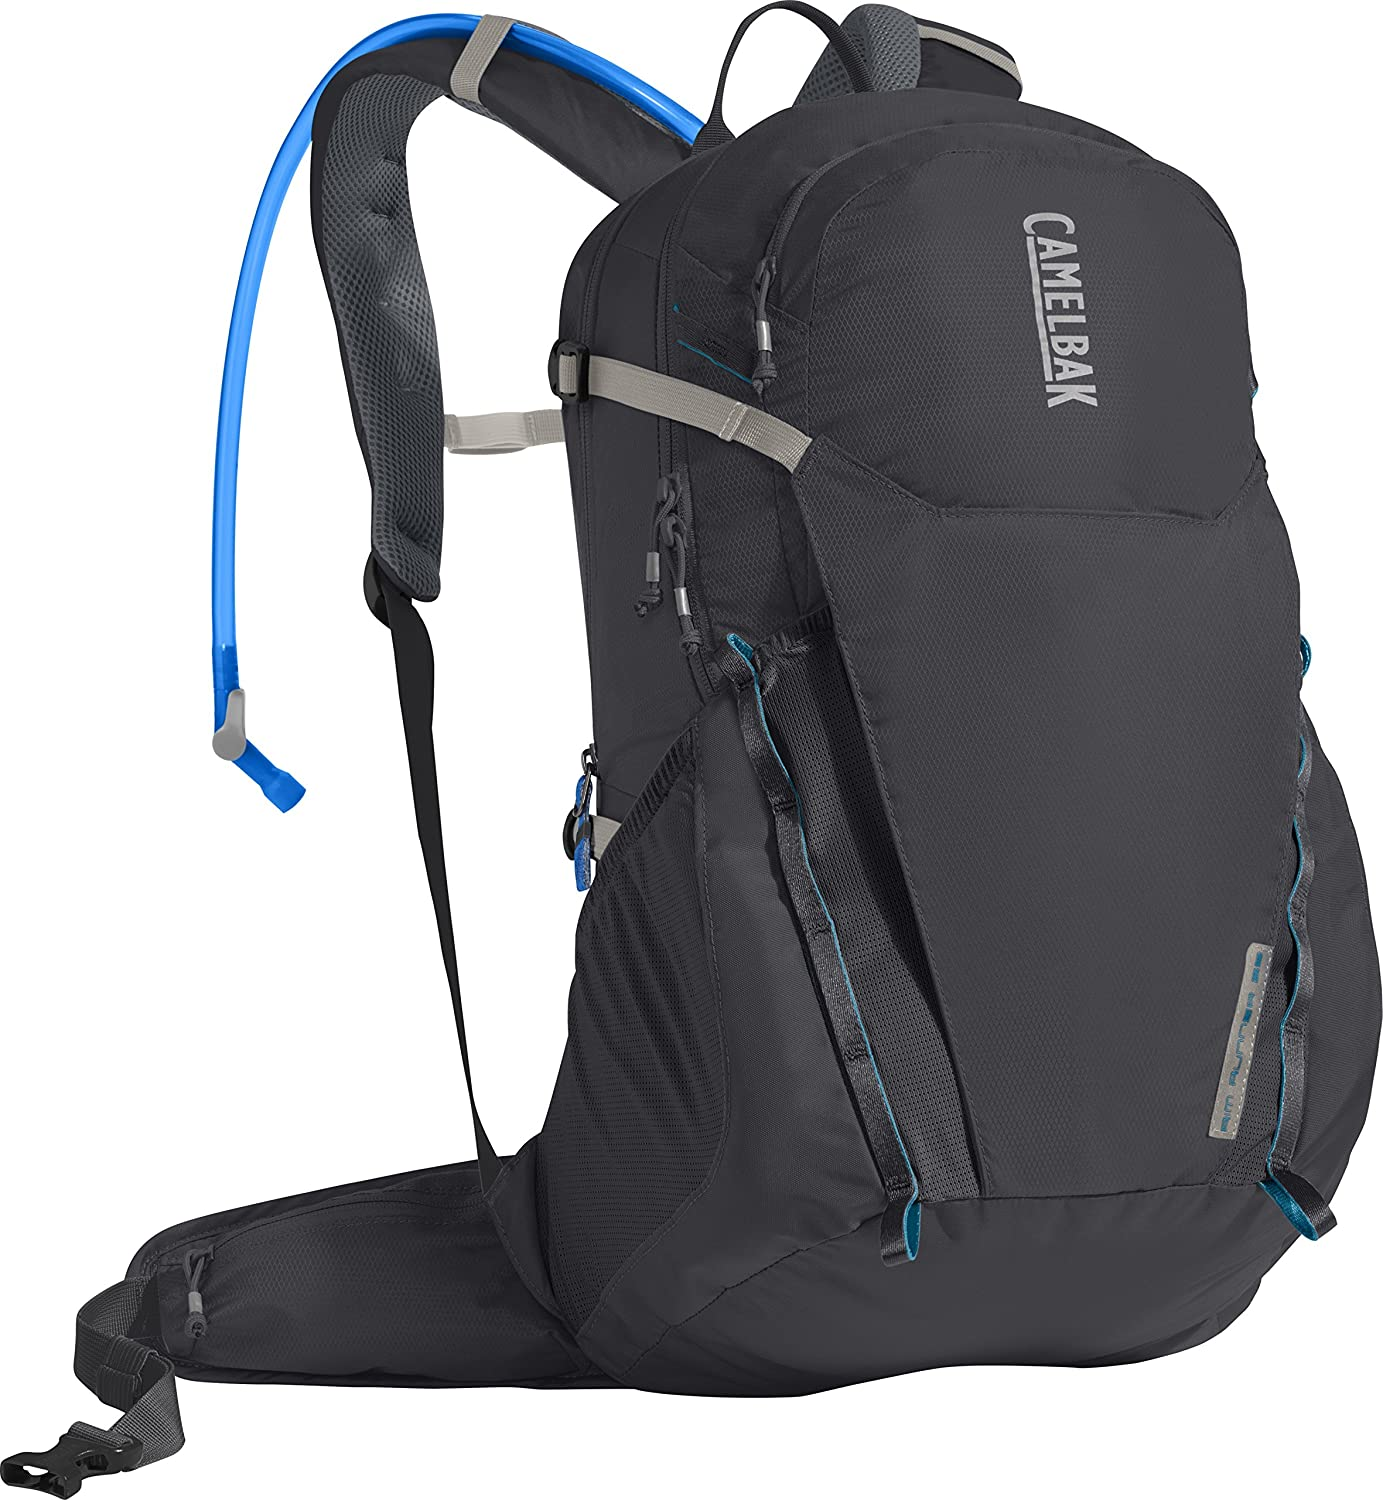 CamelBak Rim Runner 22 Hydration Pack, 85oz